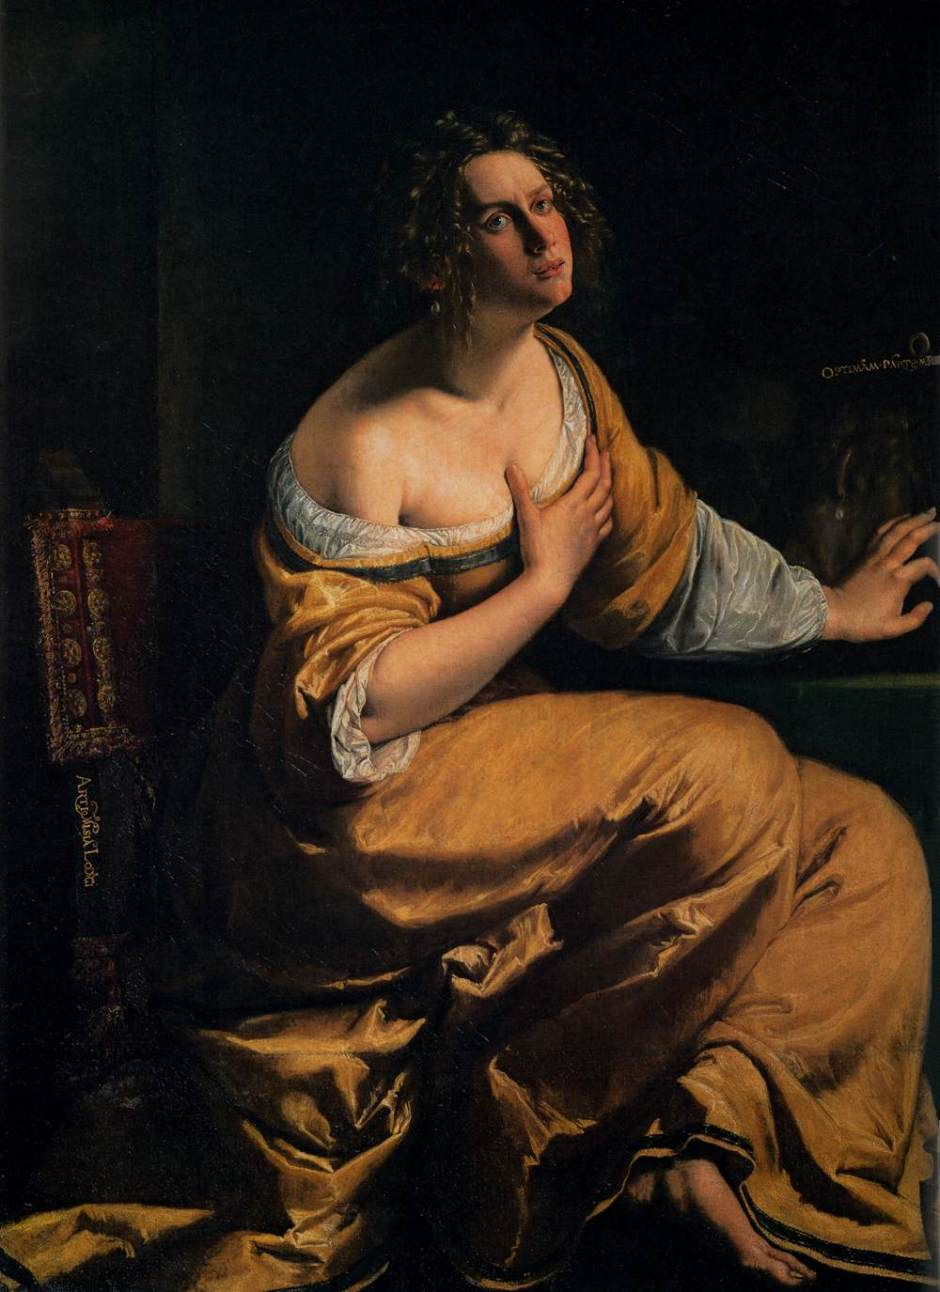 Artemisia Gentileschi, Conversion of the Magdalene (1615-6), oil on canvas, 146 x 109 cm, Galleria Palatina, Florence. Wikimedia Commons.